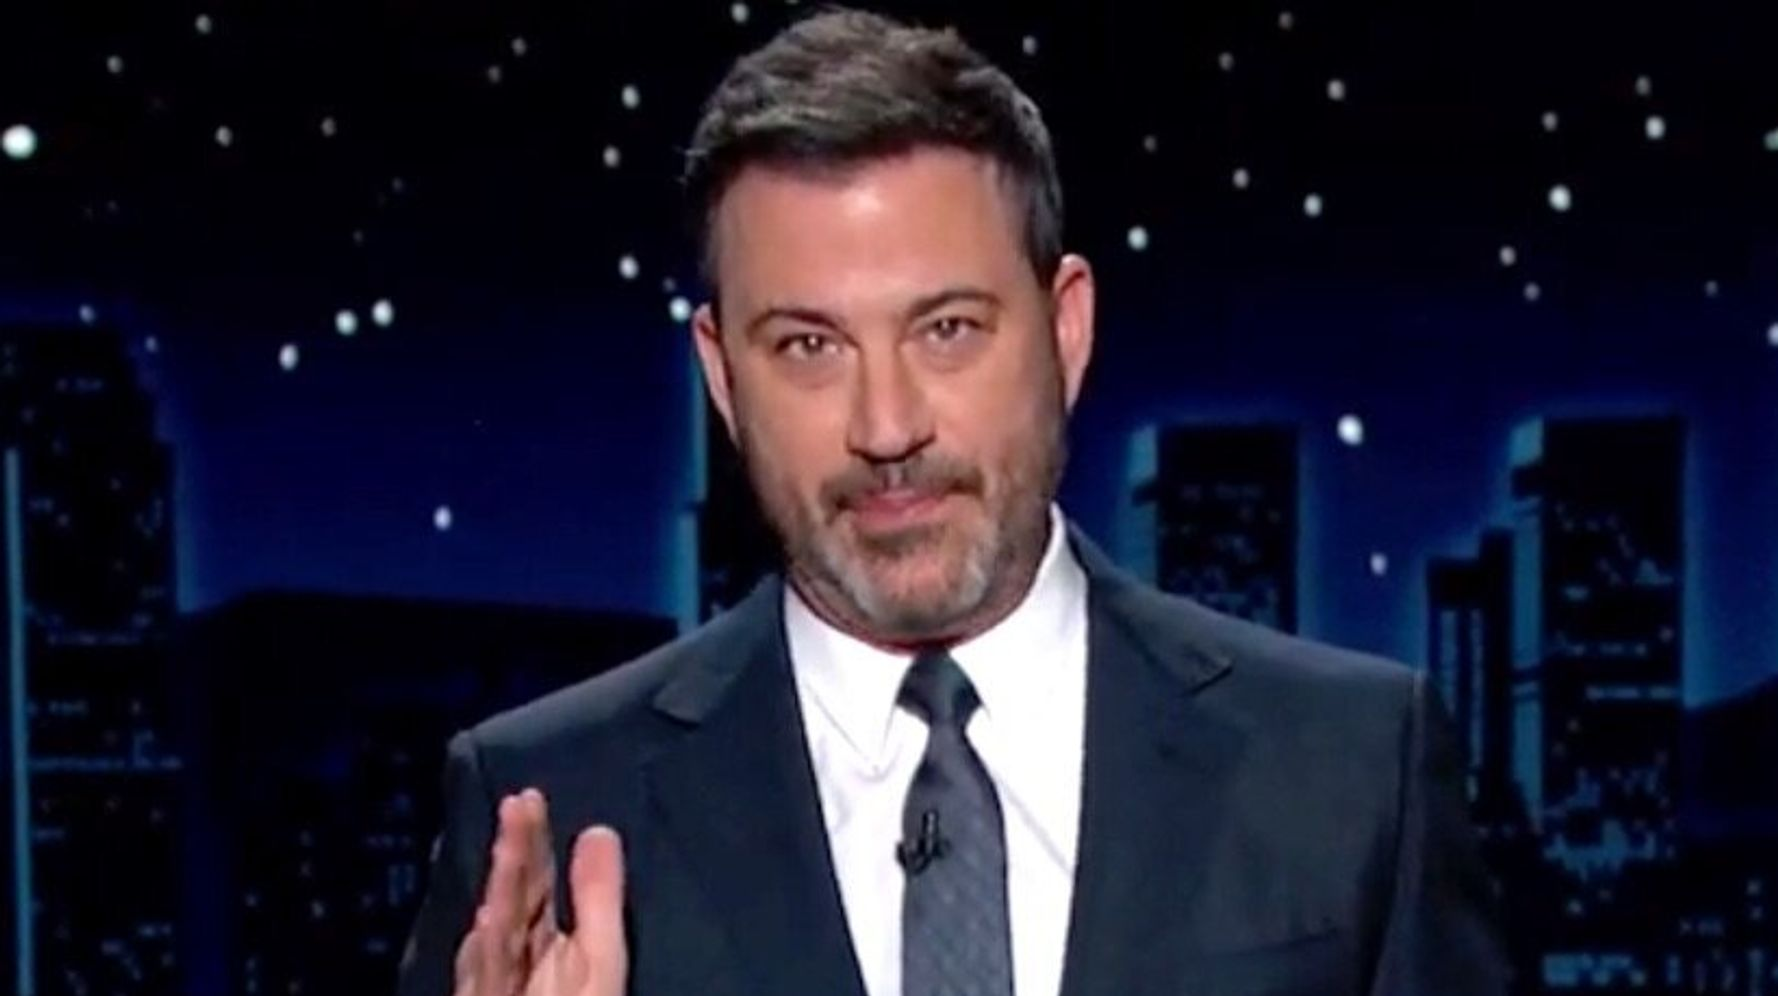 Jimmy Kimmel Has The Undeniable Proof Trump Didn't Make America Great Again